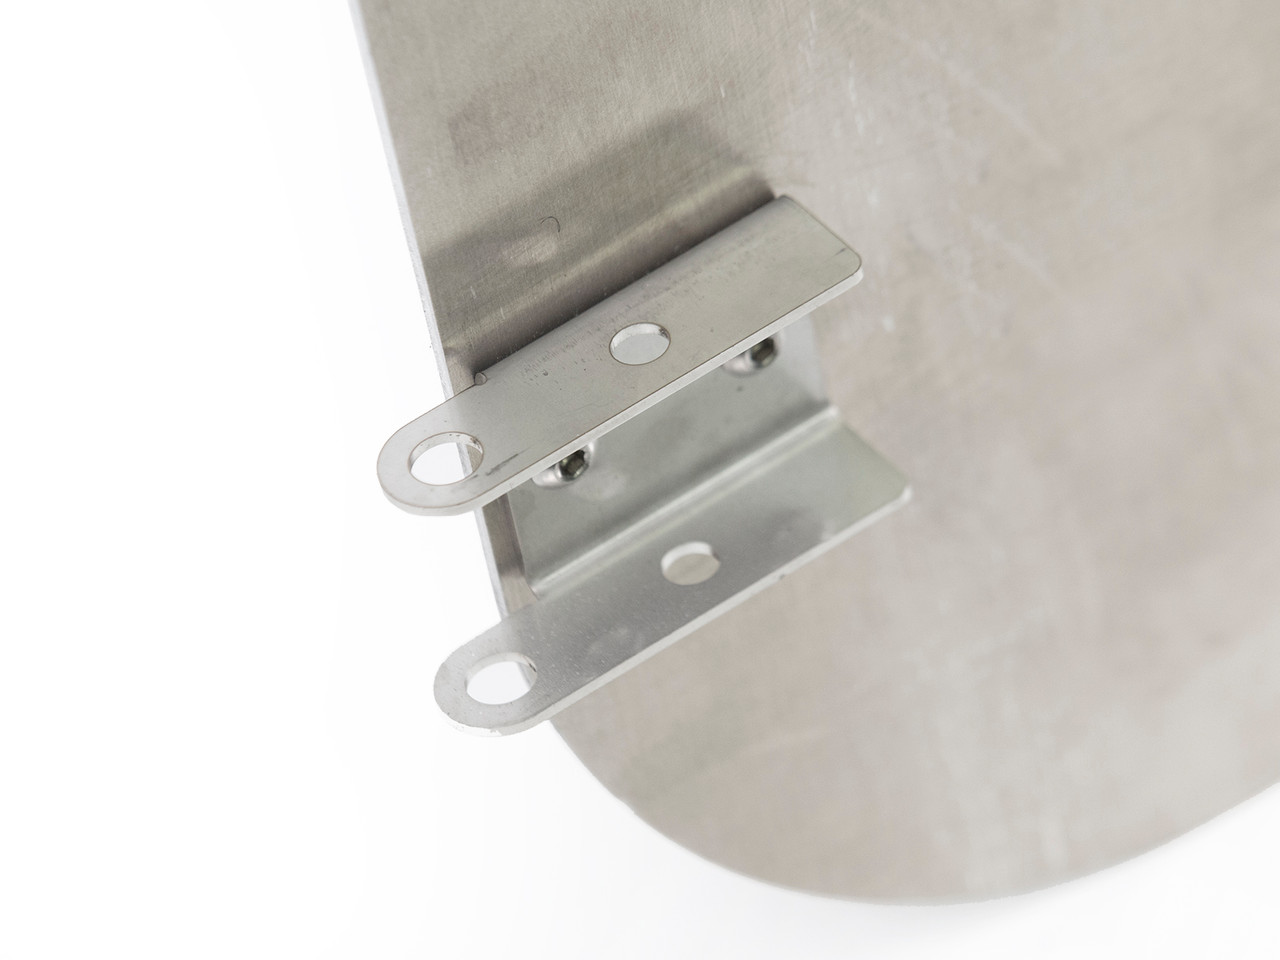 Custom stainless steel hinges for secure mounting